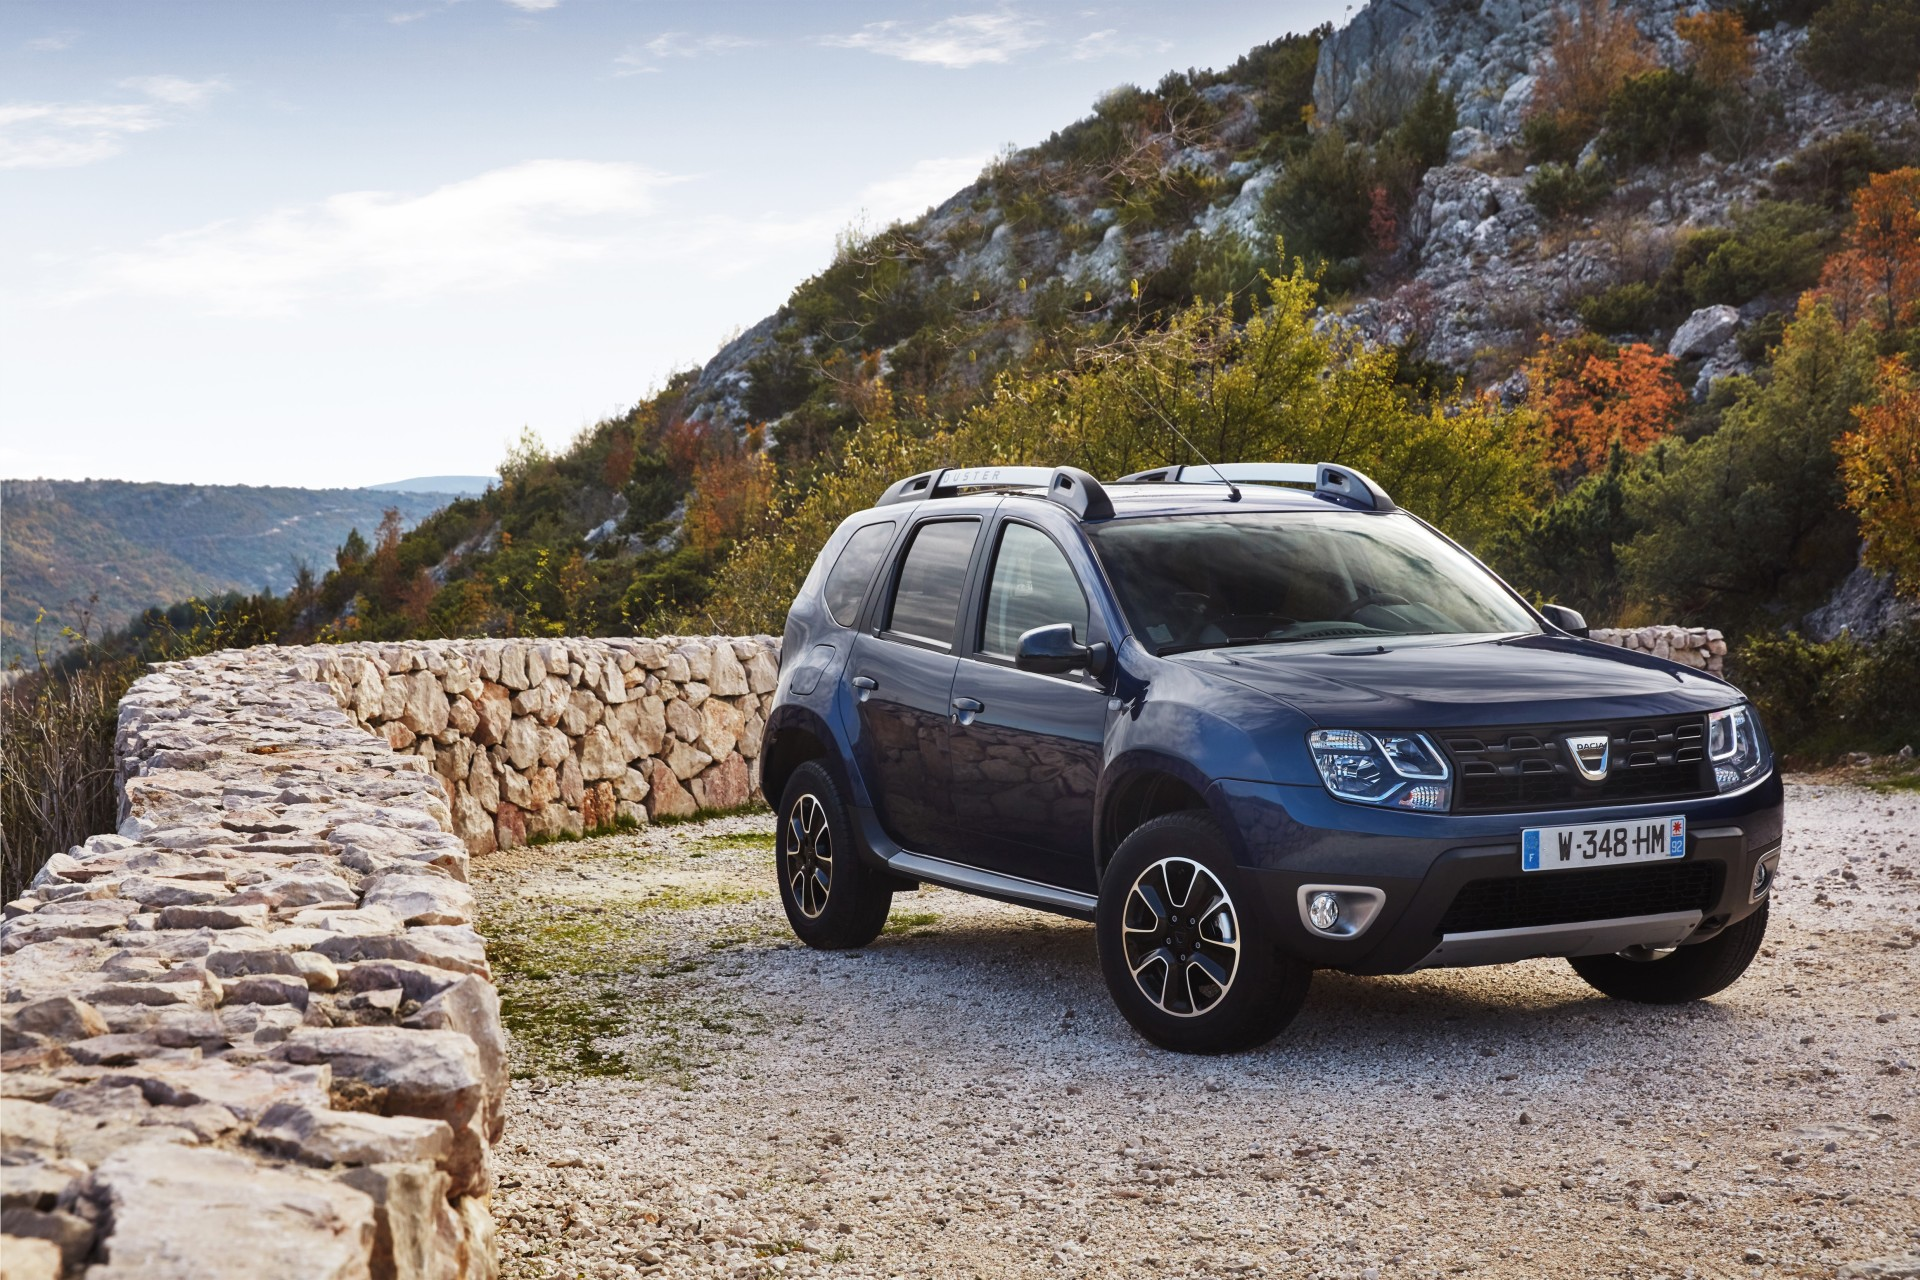 dacia une s rie limit e explorer sur duster sandero logan et lodgy photo 5 l 39 argus. Black Bedroom Furniture Sets. Home Design Ideas